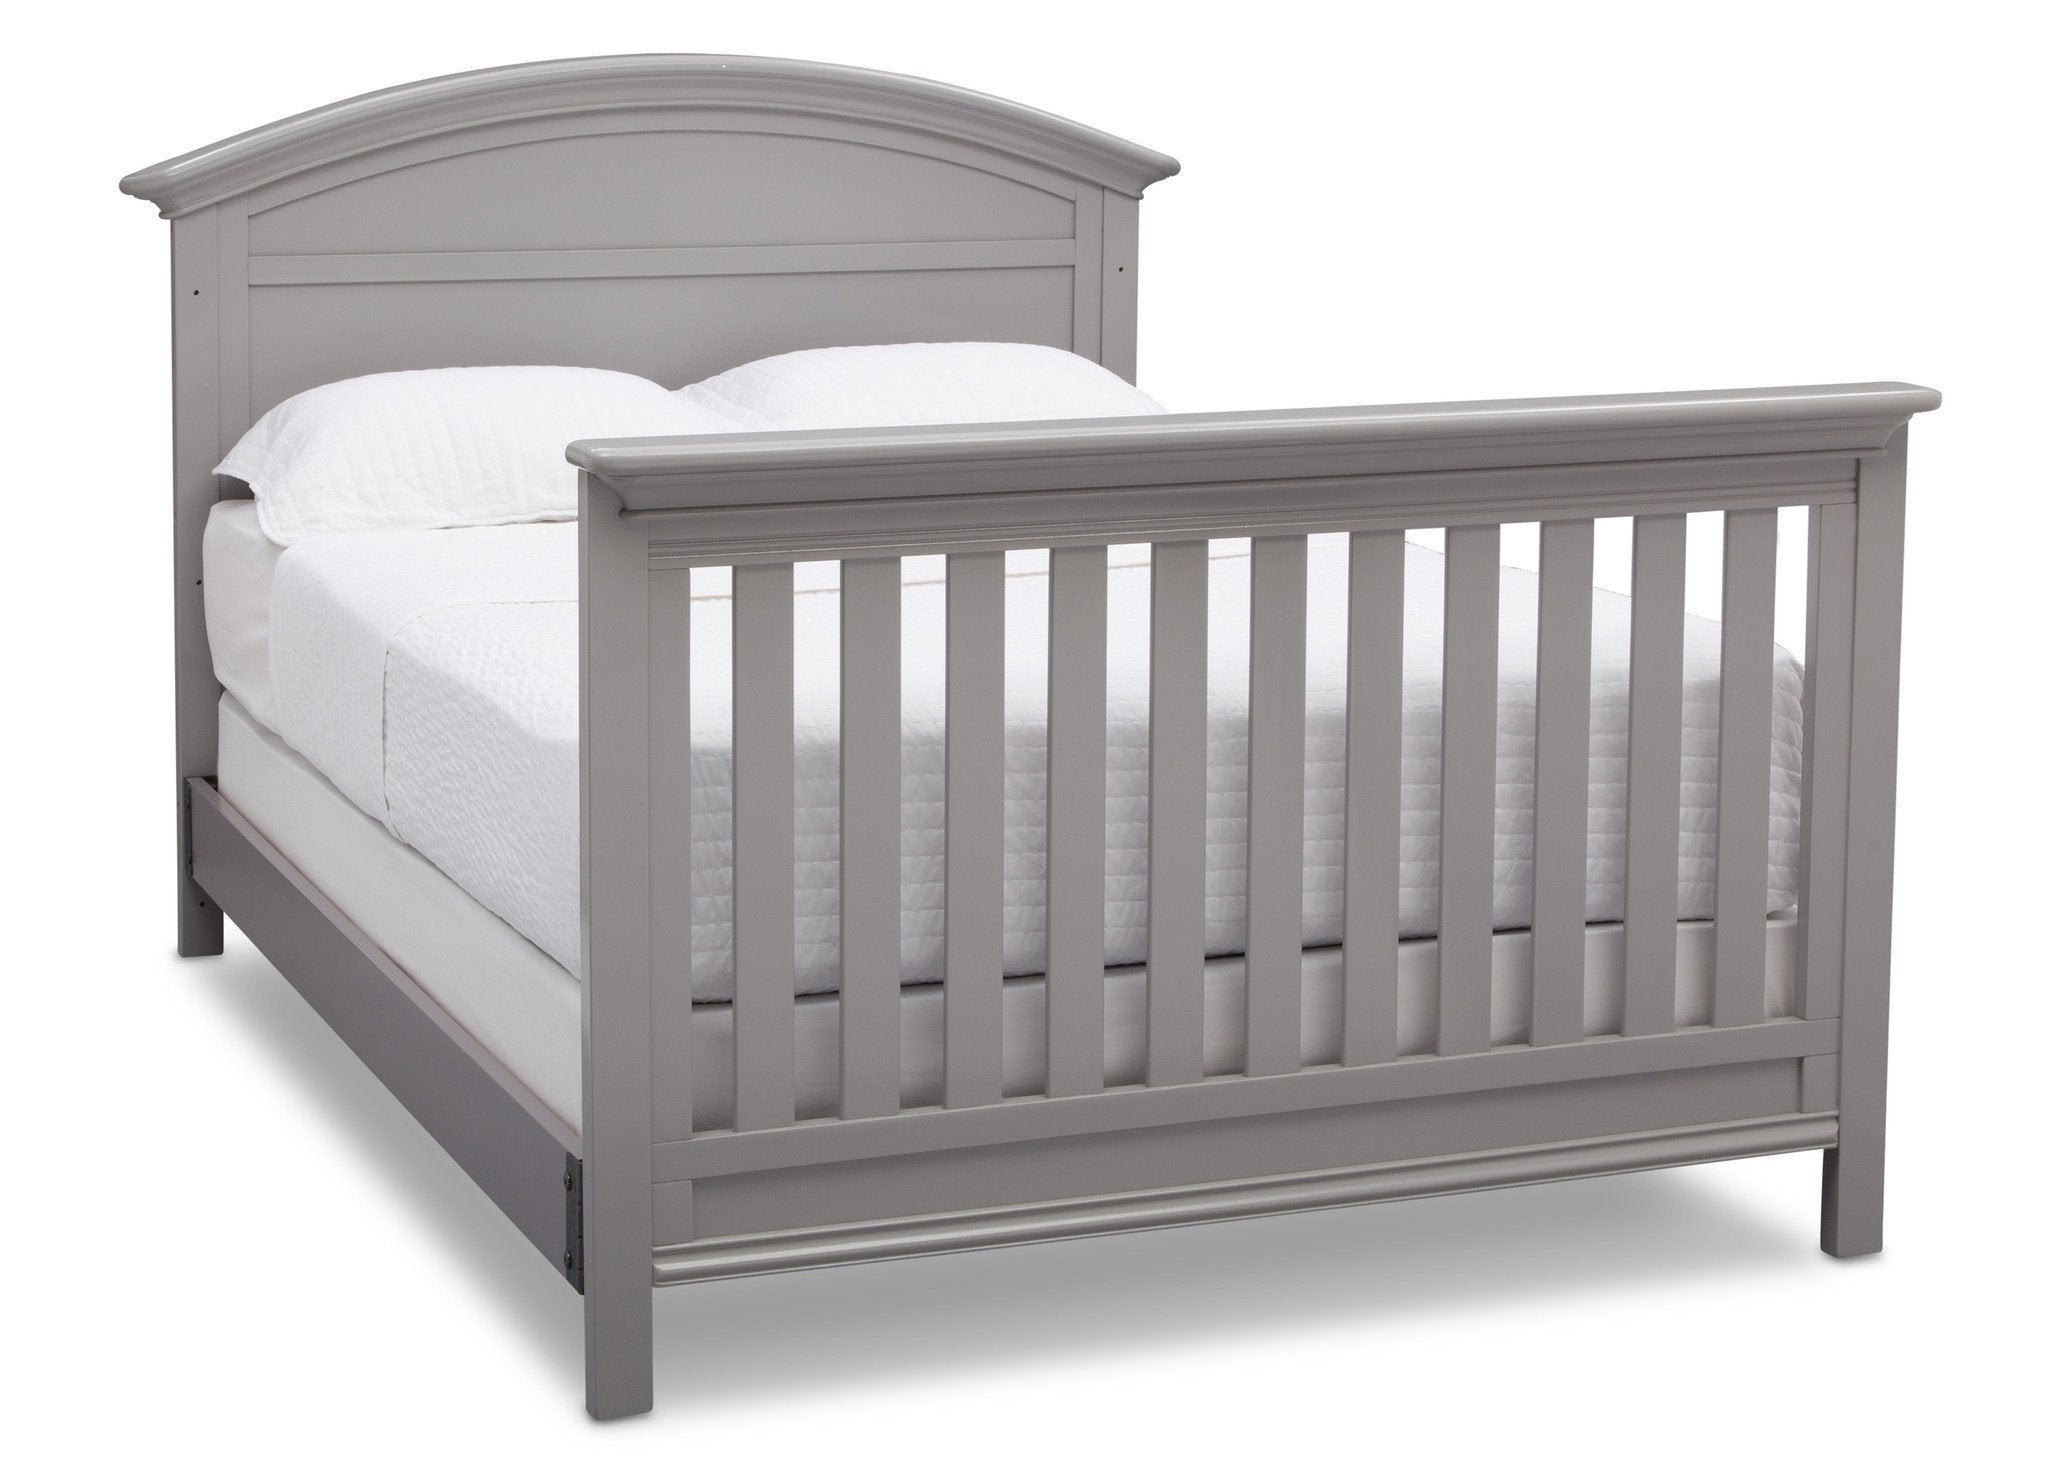 Serta Grey (026) Adelaide 4-in-1 Crib, Side View with Full Size Platform Bed Kit (for 4-in-1 Cribs) 700850 and Footboard a7a